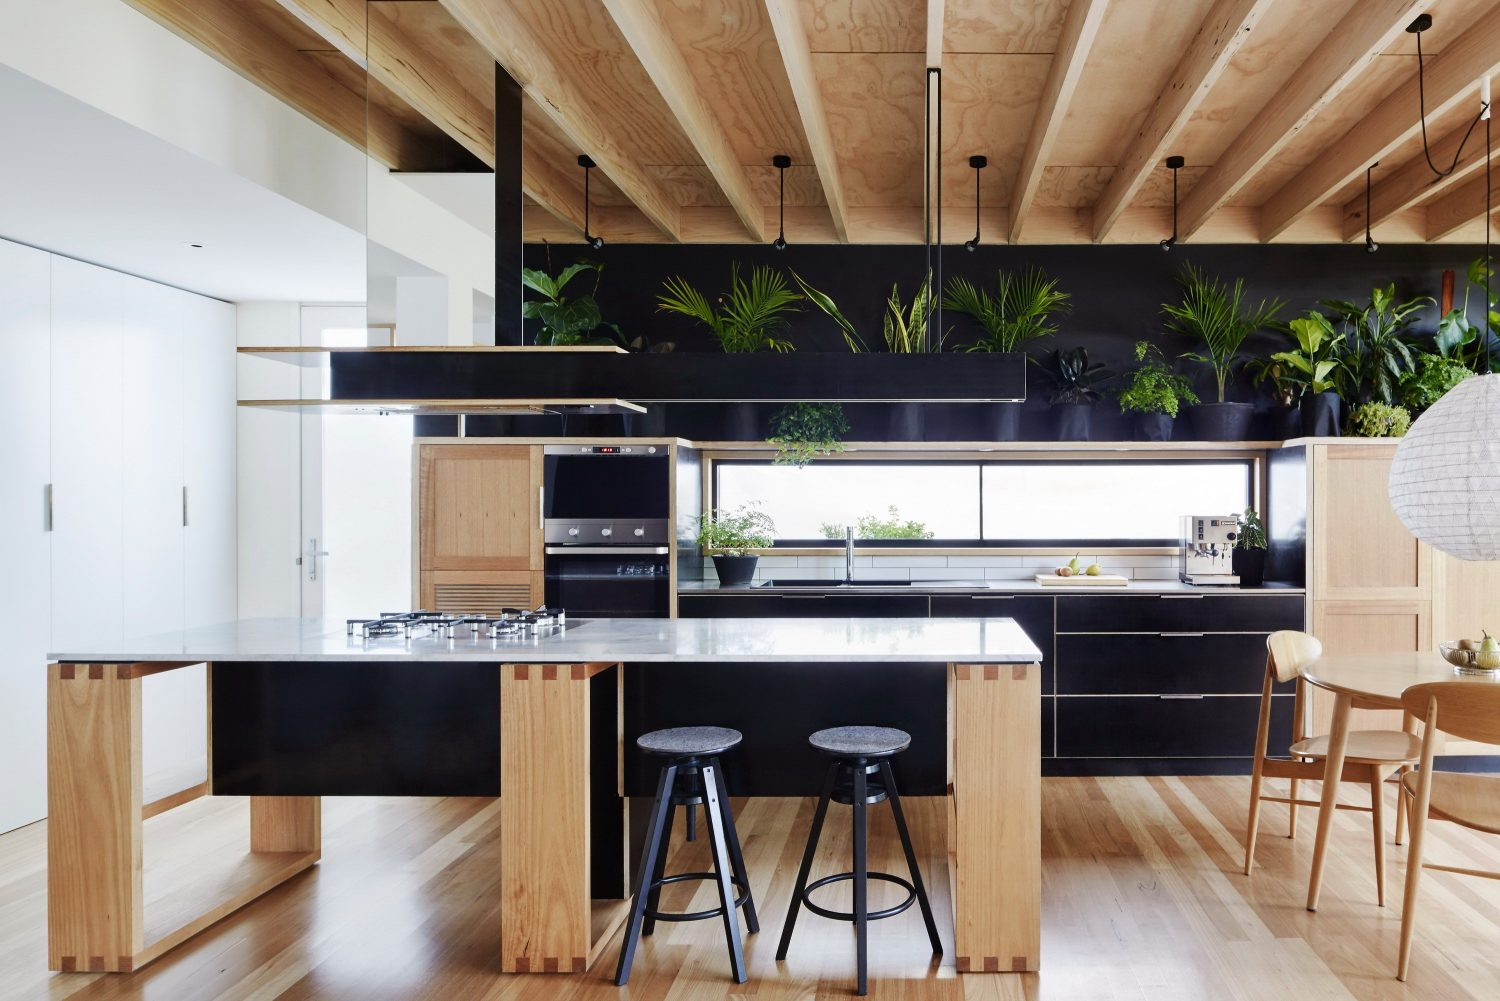 Wooden Box House by Moloney Architects